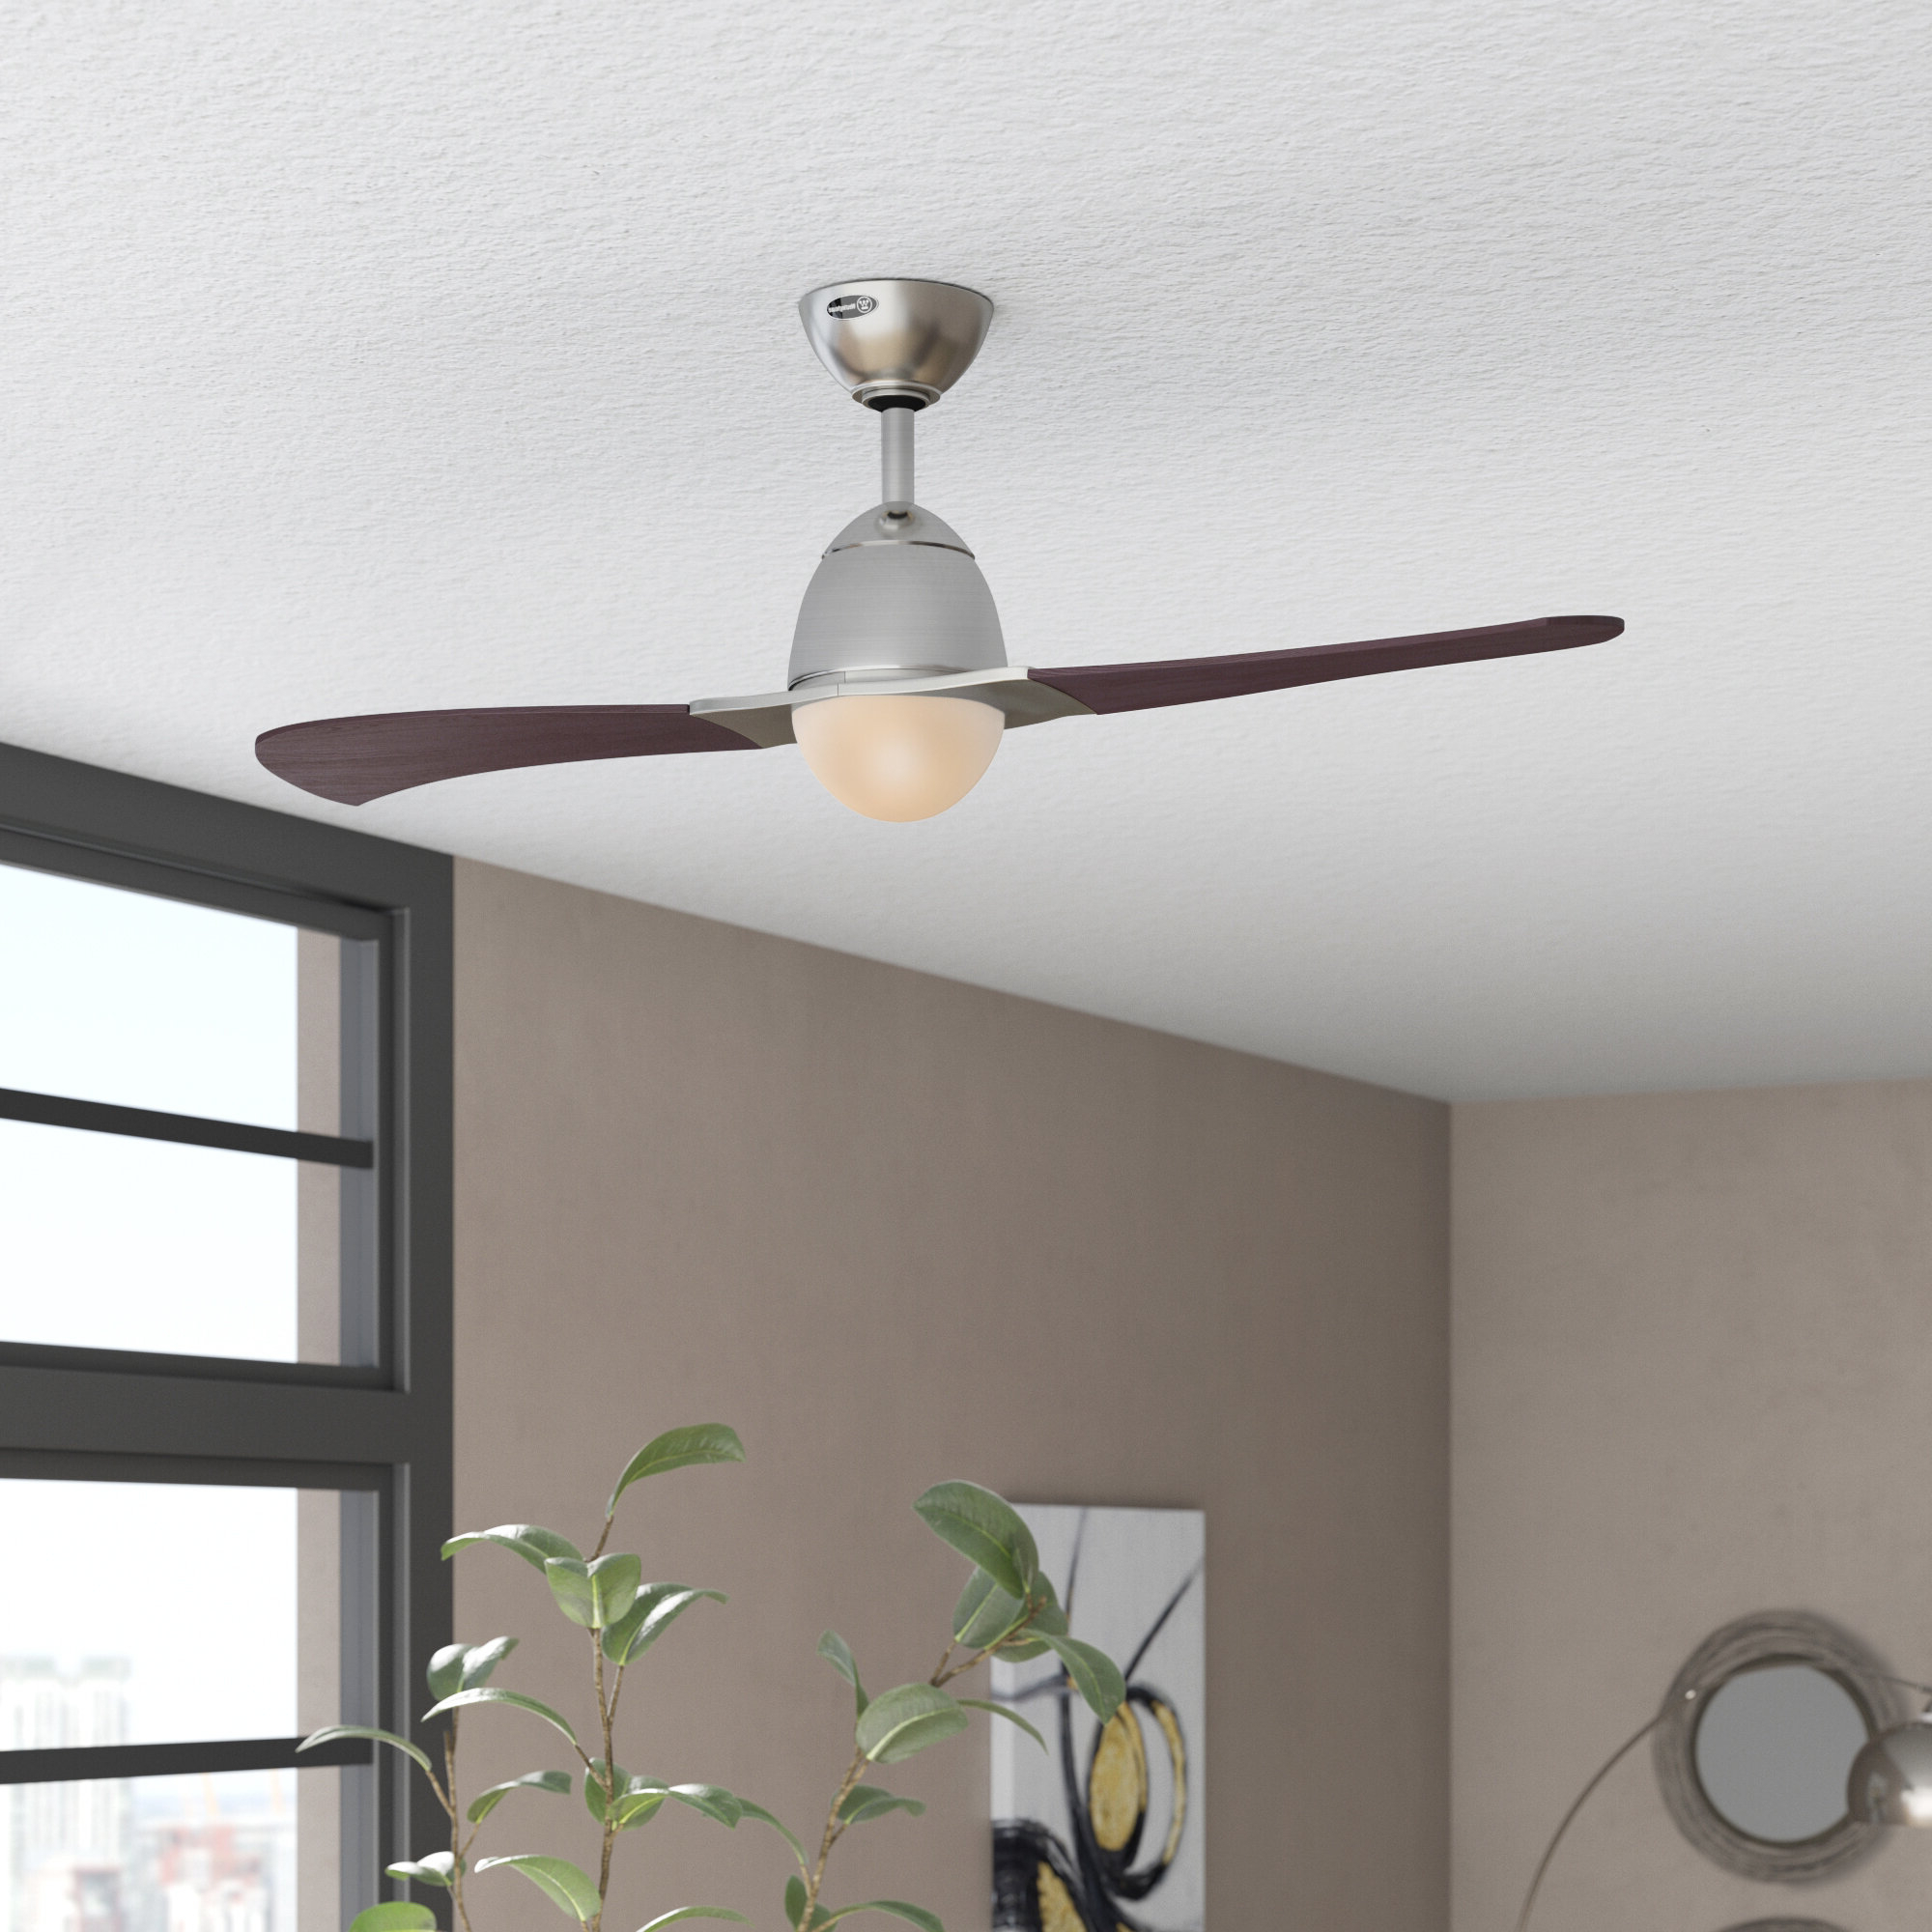 "Recent 48"" Amezquita 2 Blade Led Ceiling Fan With Remote Light Kit Included Throughout Concept Ii 3 Blade Led Ceiling Fans With Remote (Gallery 13 of 20)"